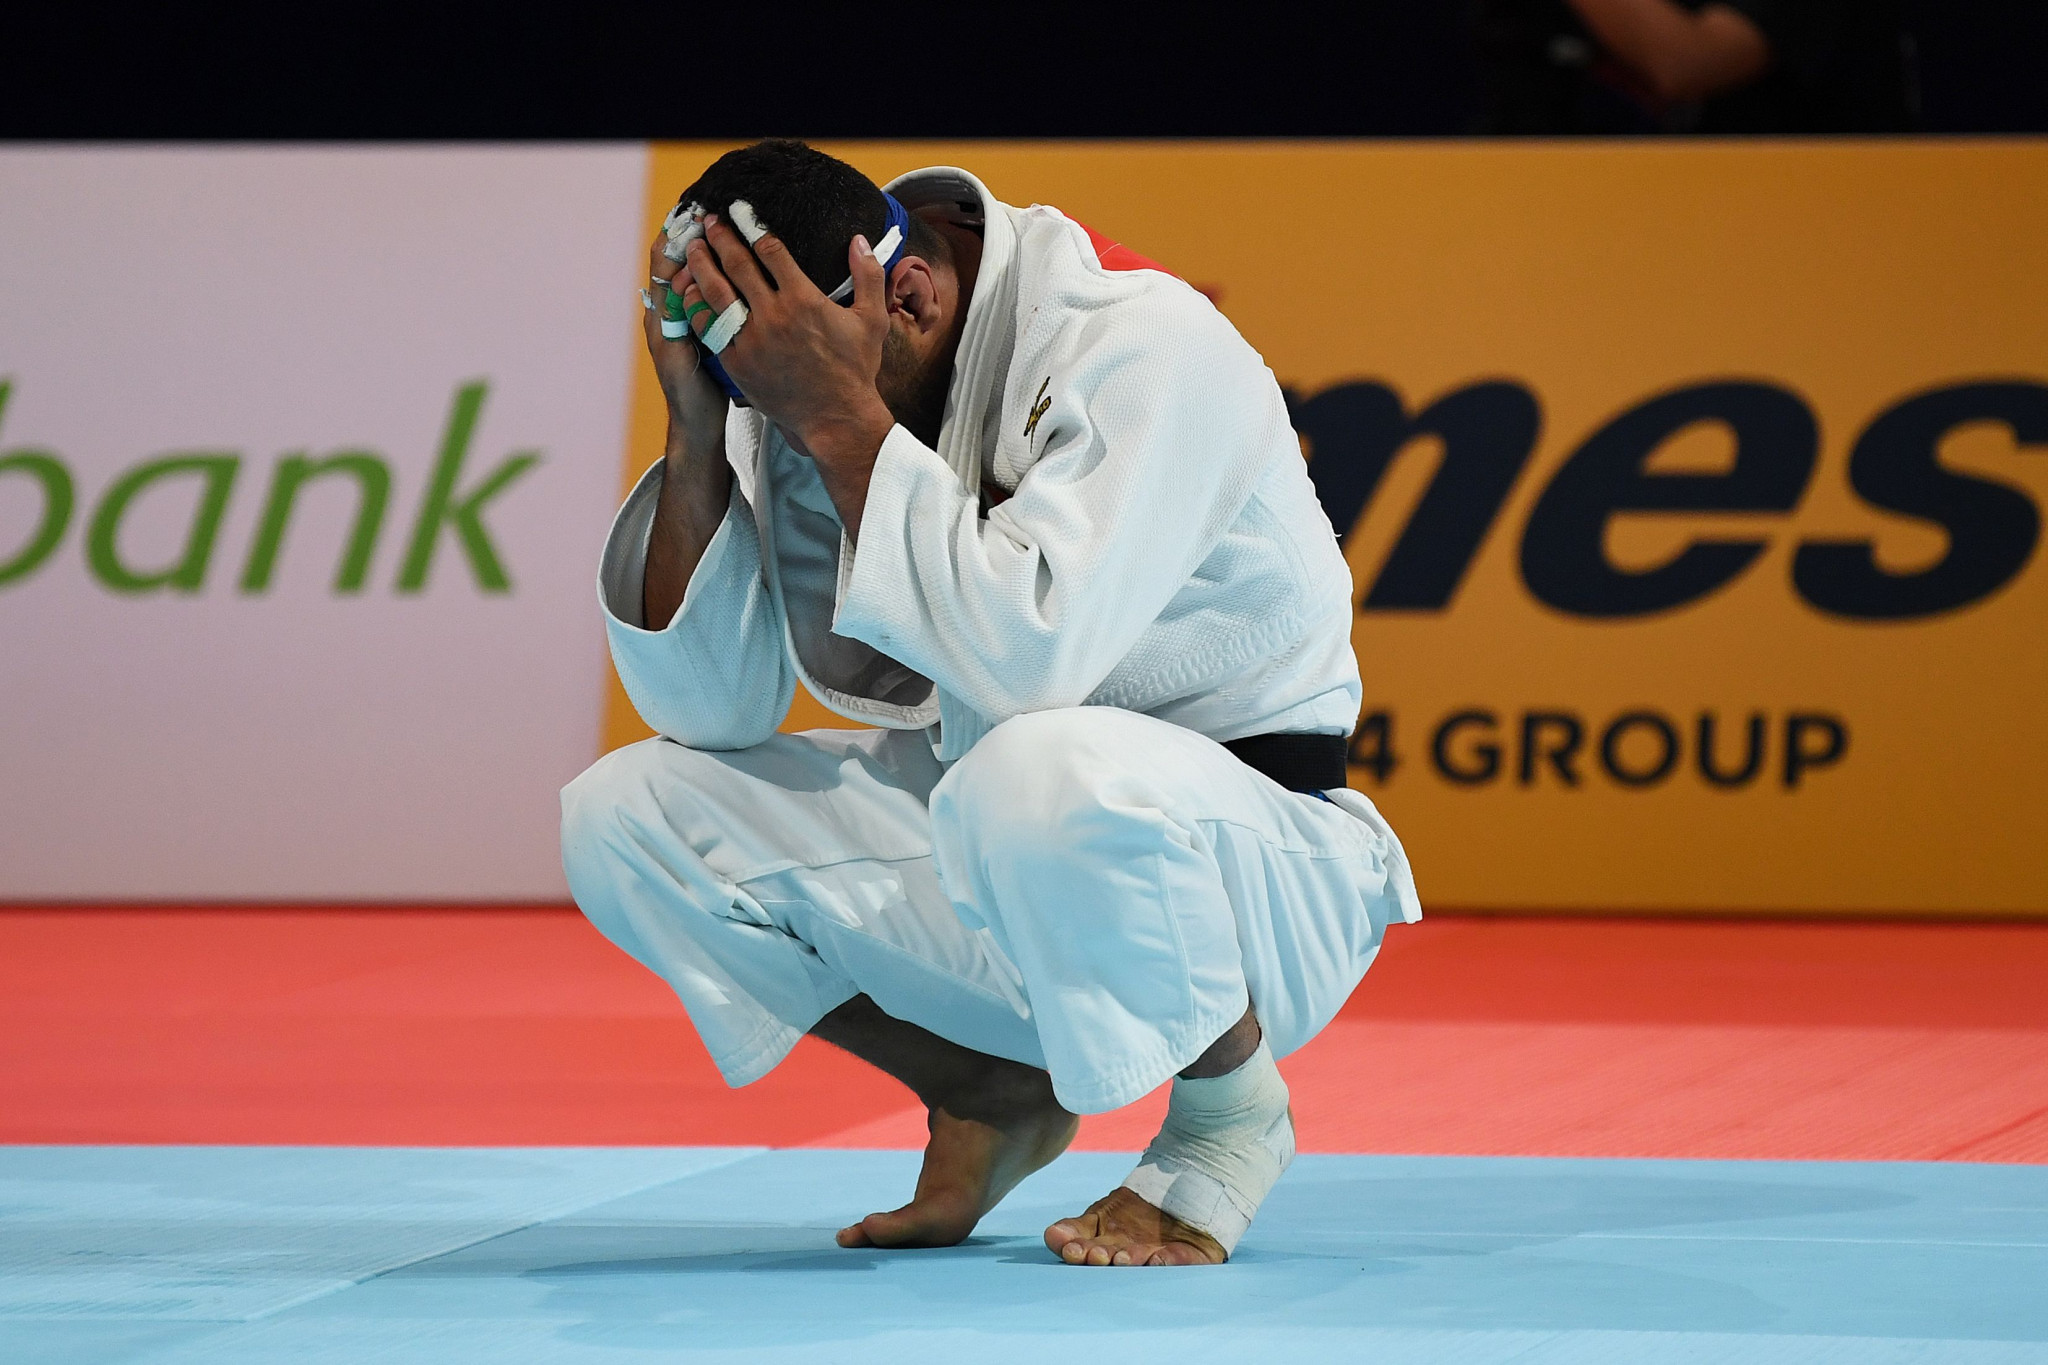 Iran has been suspended by the International Judo Federation after Saeid Mollaei was allegedly ordered to lose to avoid facing an Israeli at the World Championships in Tokyo last year ©Getty Images